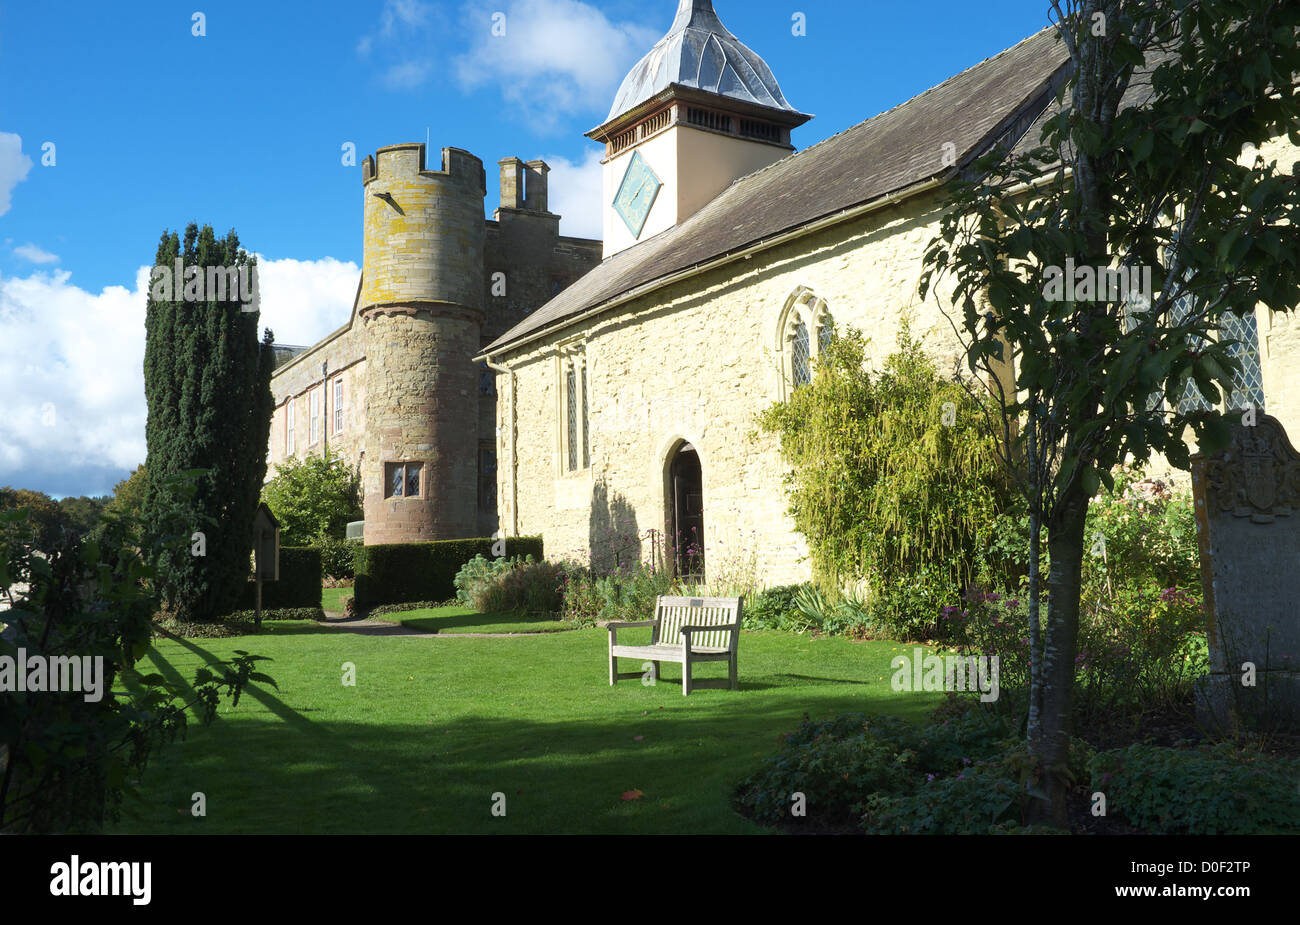 St Michael's Church and Croft Castle, Herefordshire, England, UK - Stock Image